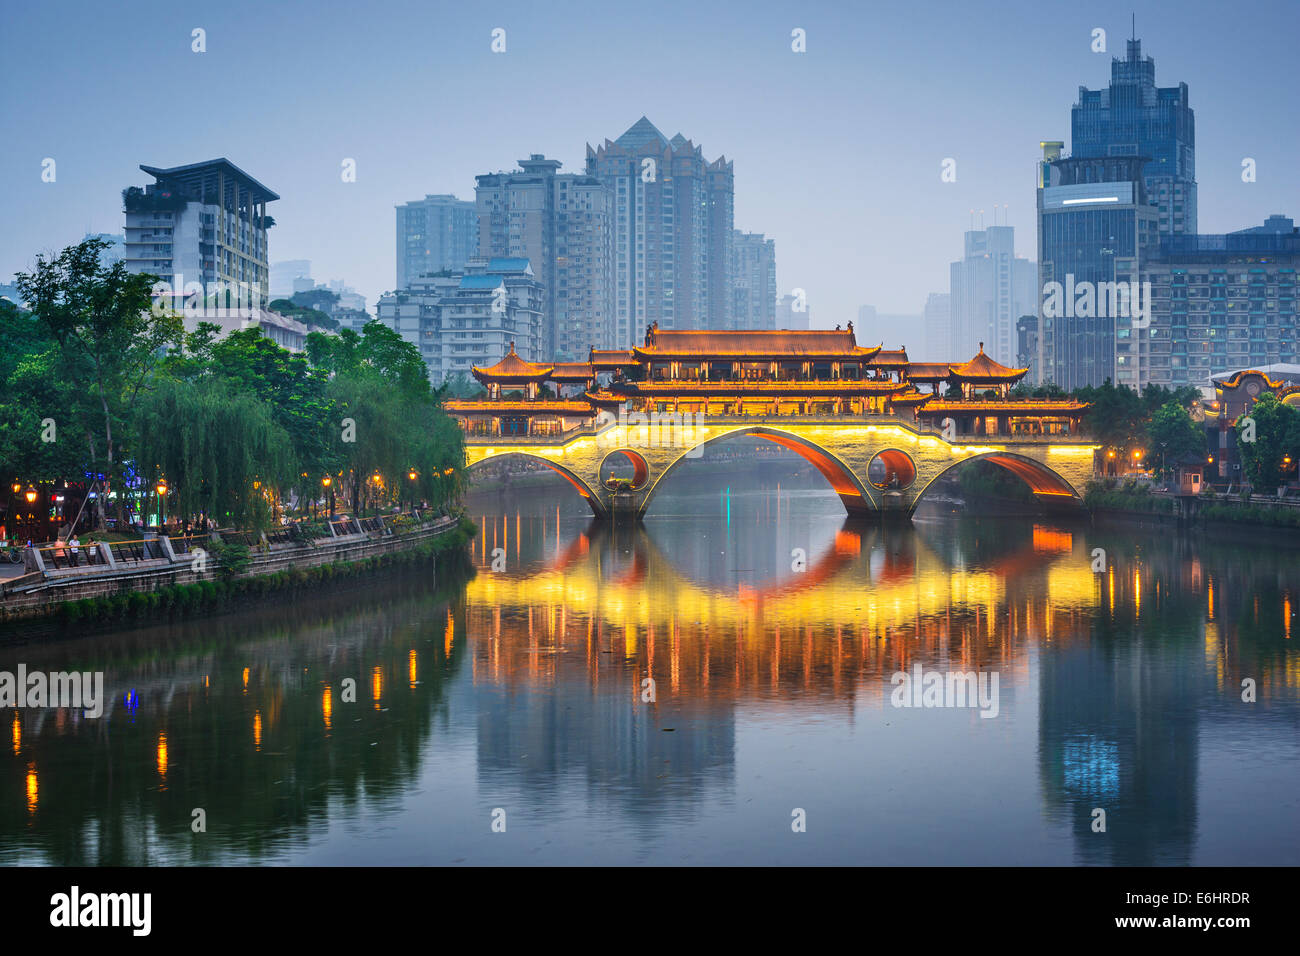 De Chengdu, Sichuan, China en Anshun Bridge. Imagen De Stock